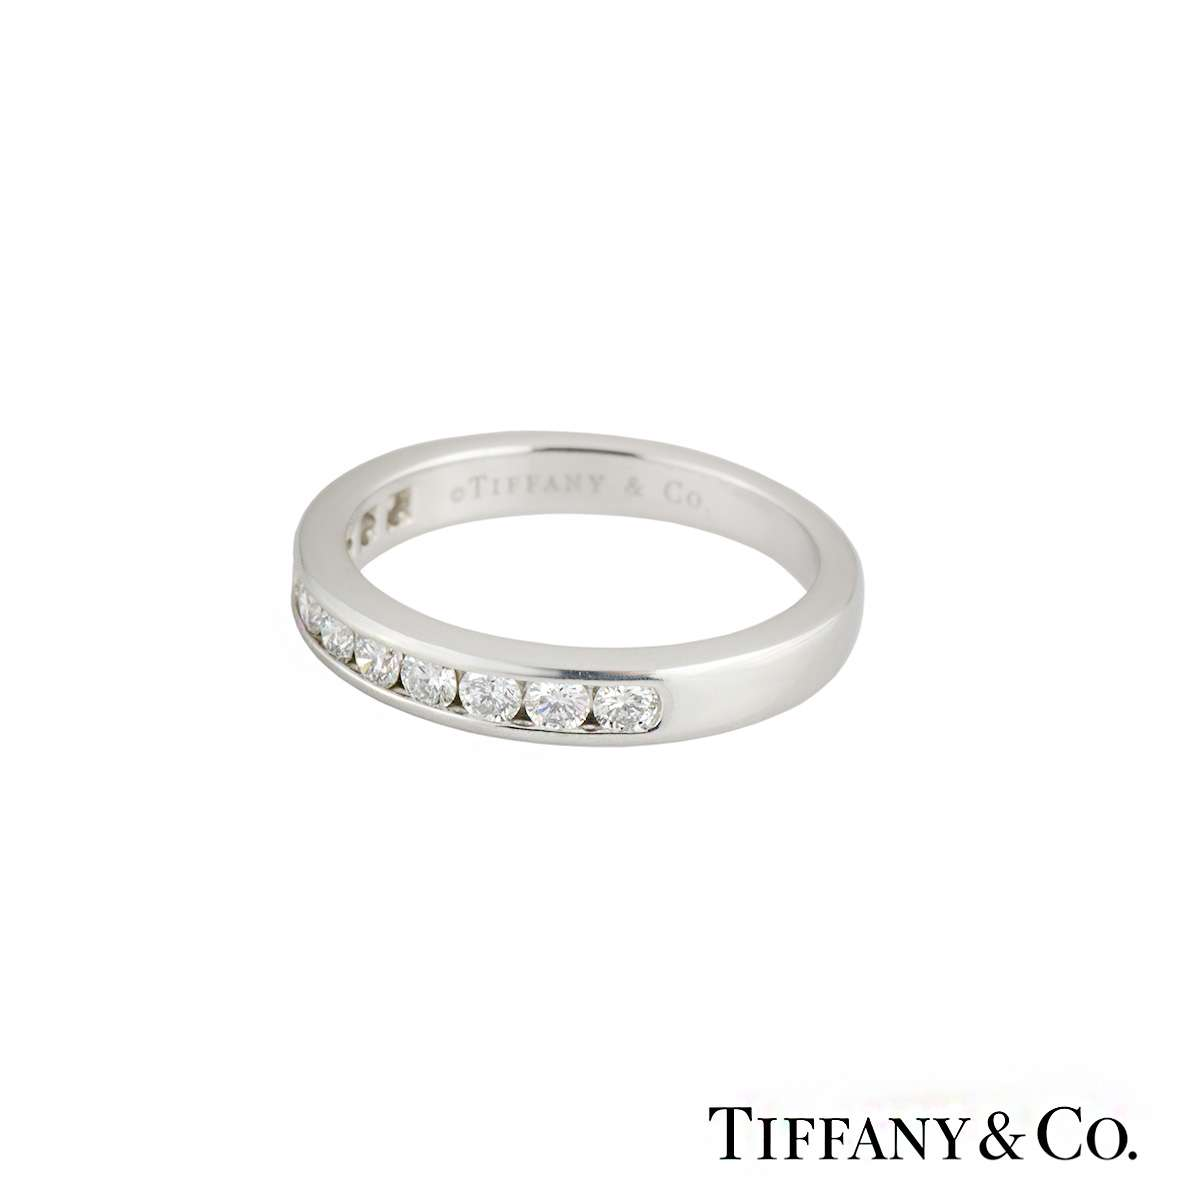 Tiffany Amp Co Round Brilliant Cut Diamond Half Eternity